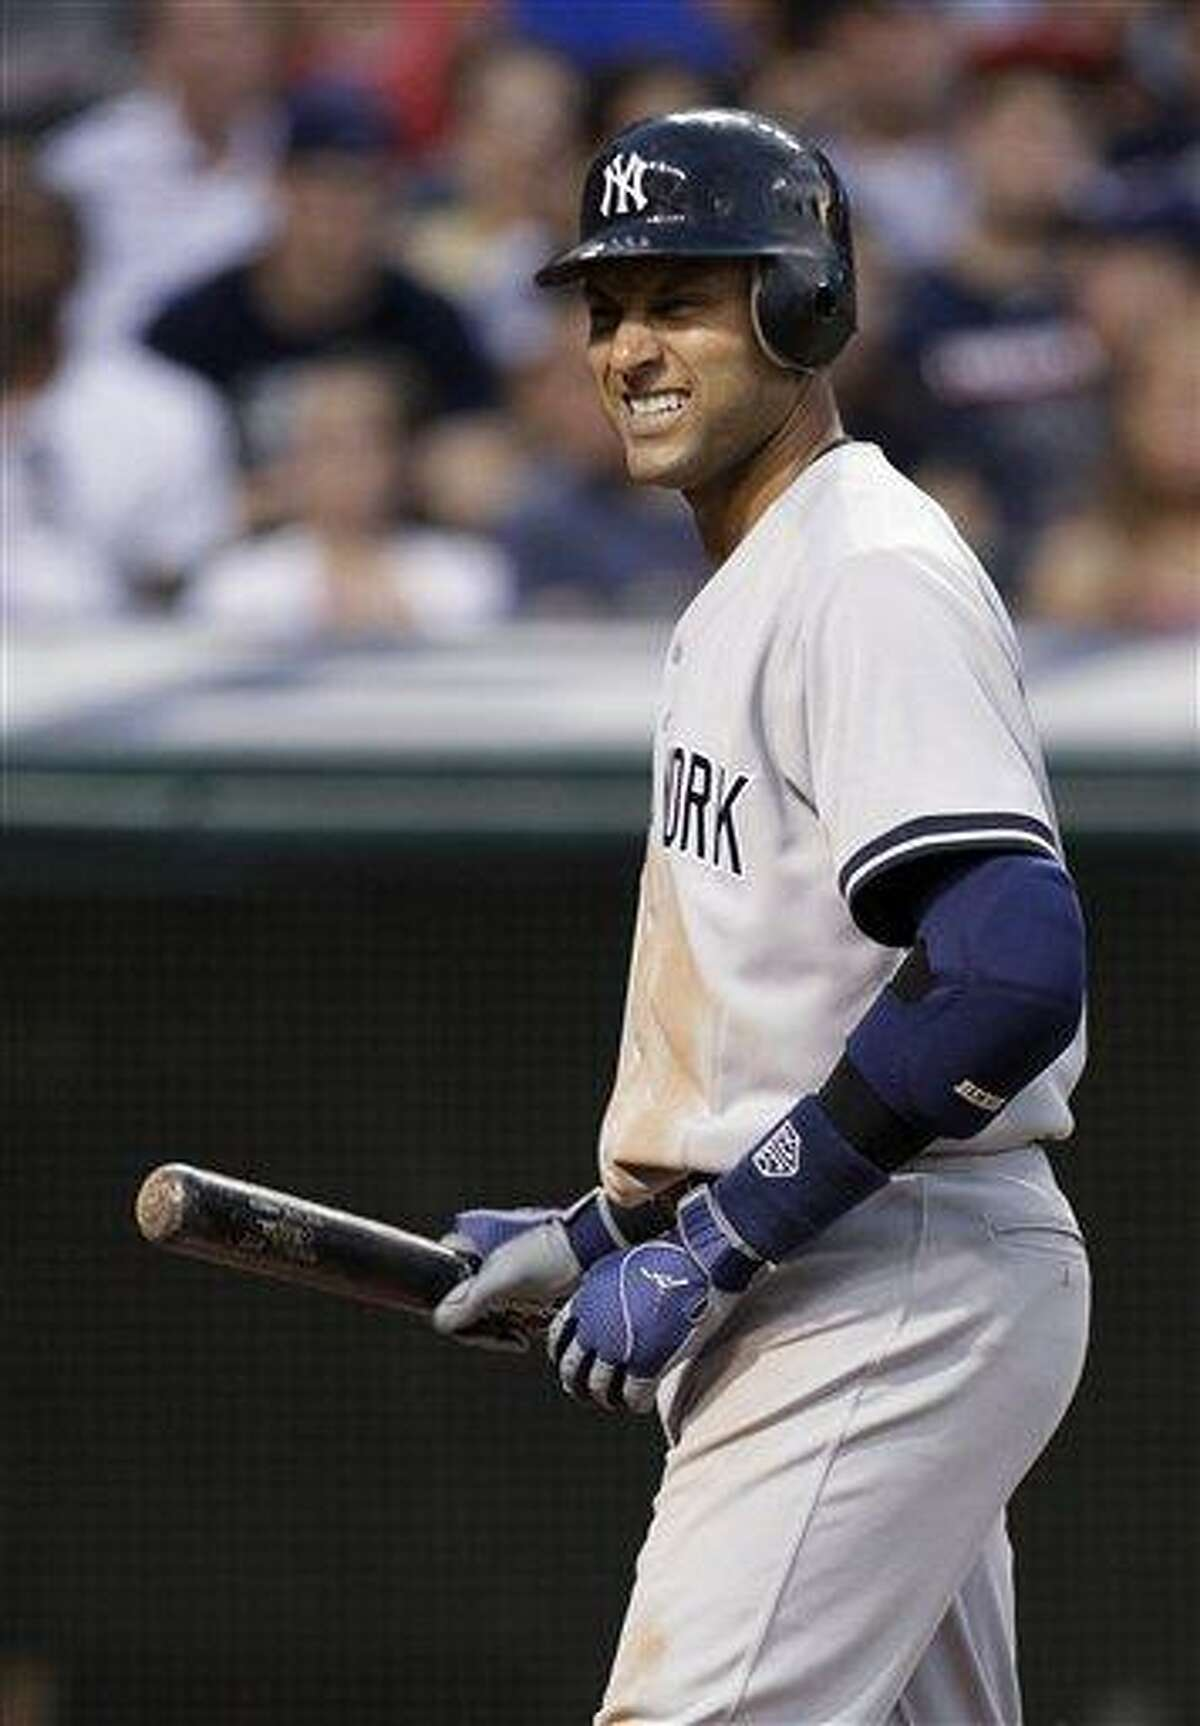 The Yankees' Derek Jeter doubled for his 2,997th hit, but the Yankees fell to the Indians 5-3. (AP Photo)